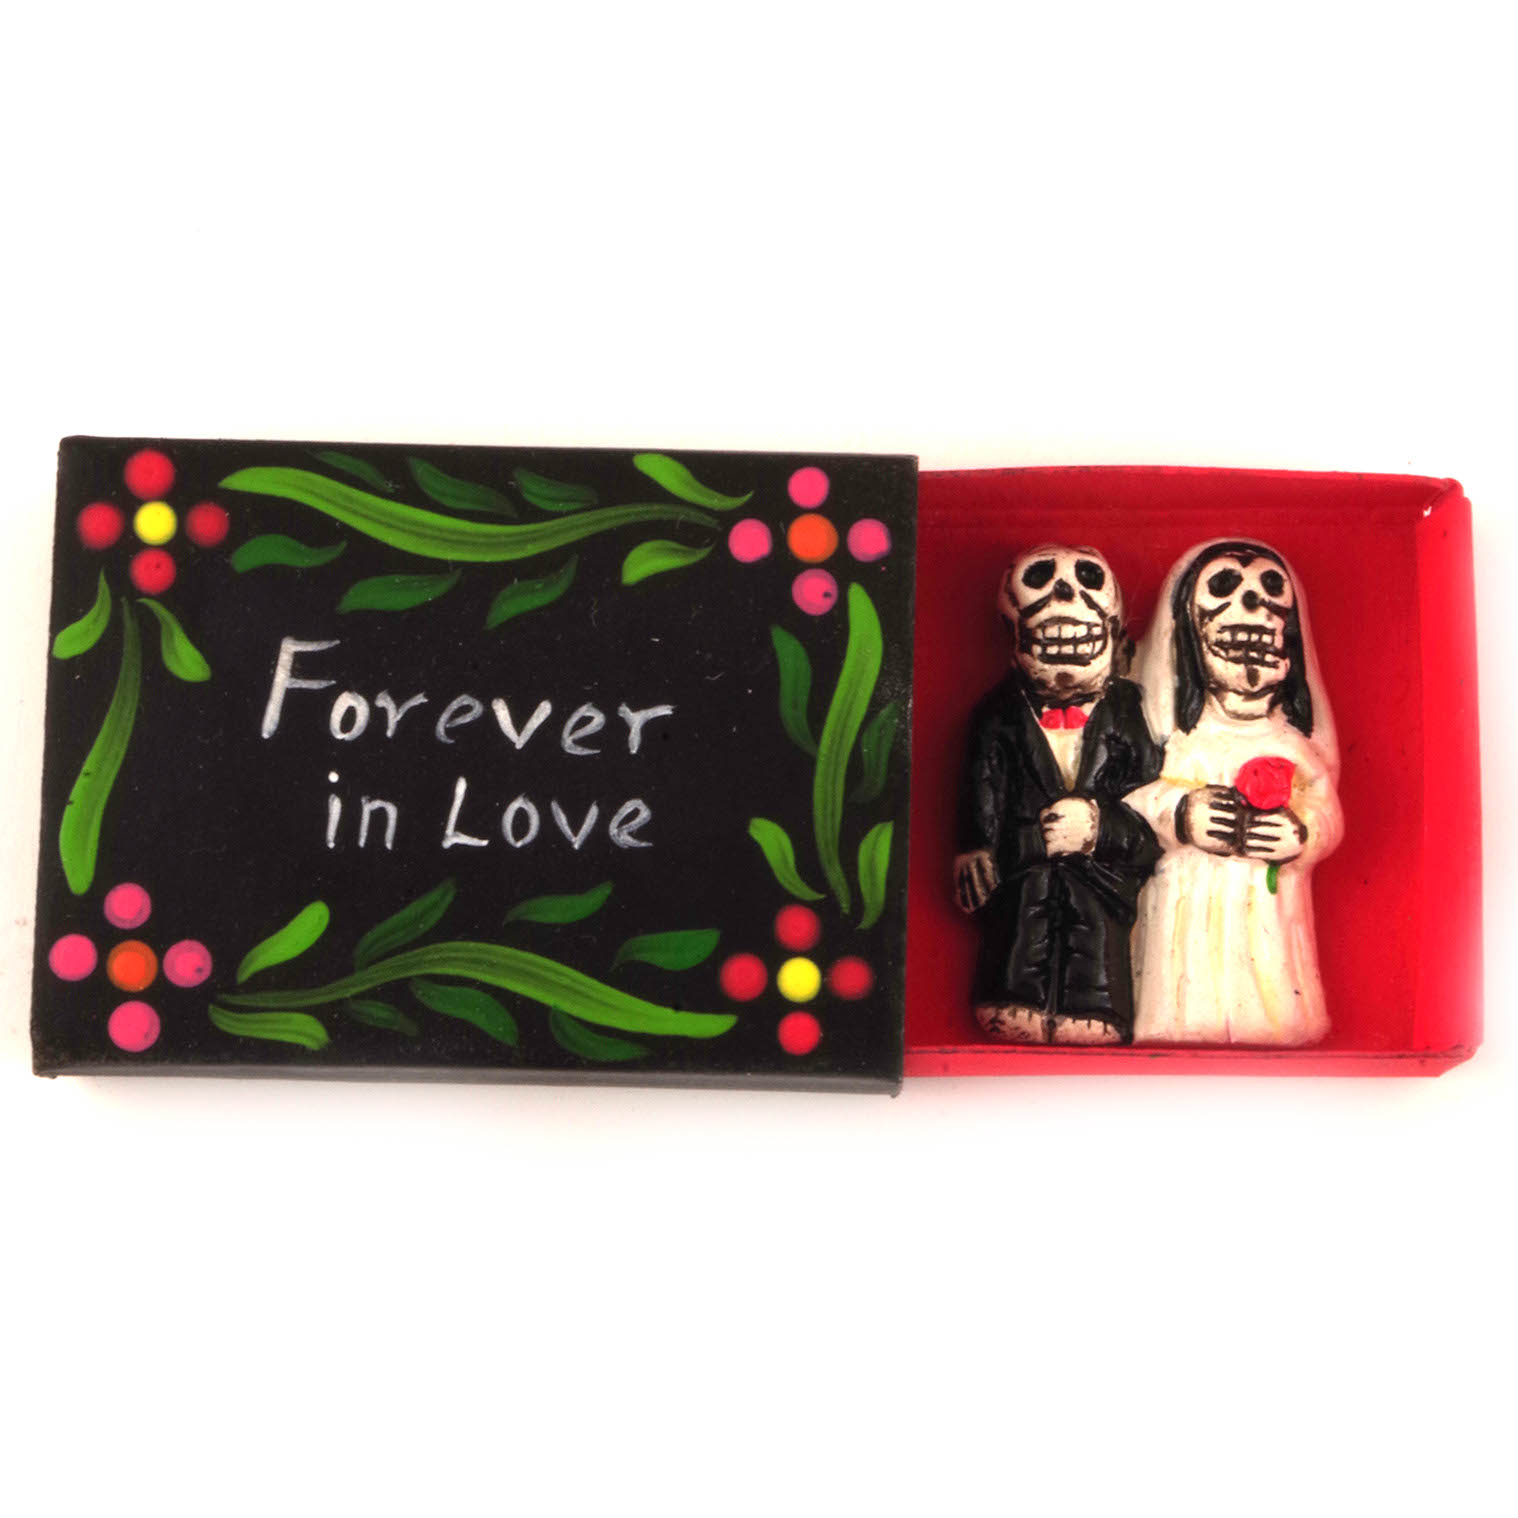 Forever in Love - Bride and Groom